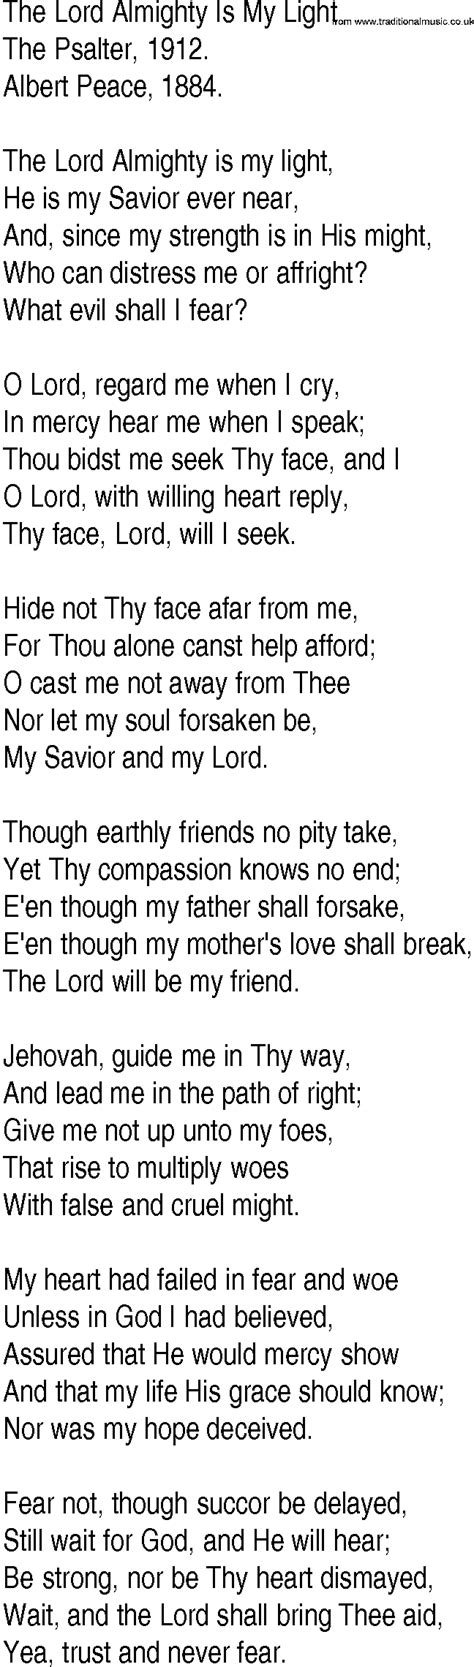 The Lord Is Light Lyrics by Hymn And Gospel Song Lyrics For The Lord Almighty Is